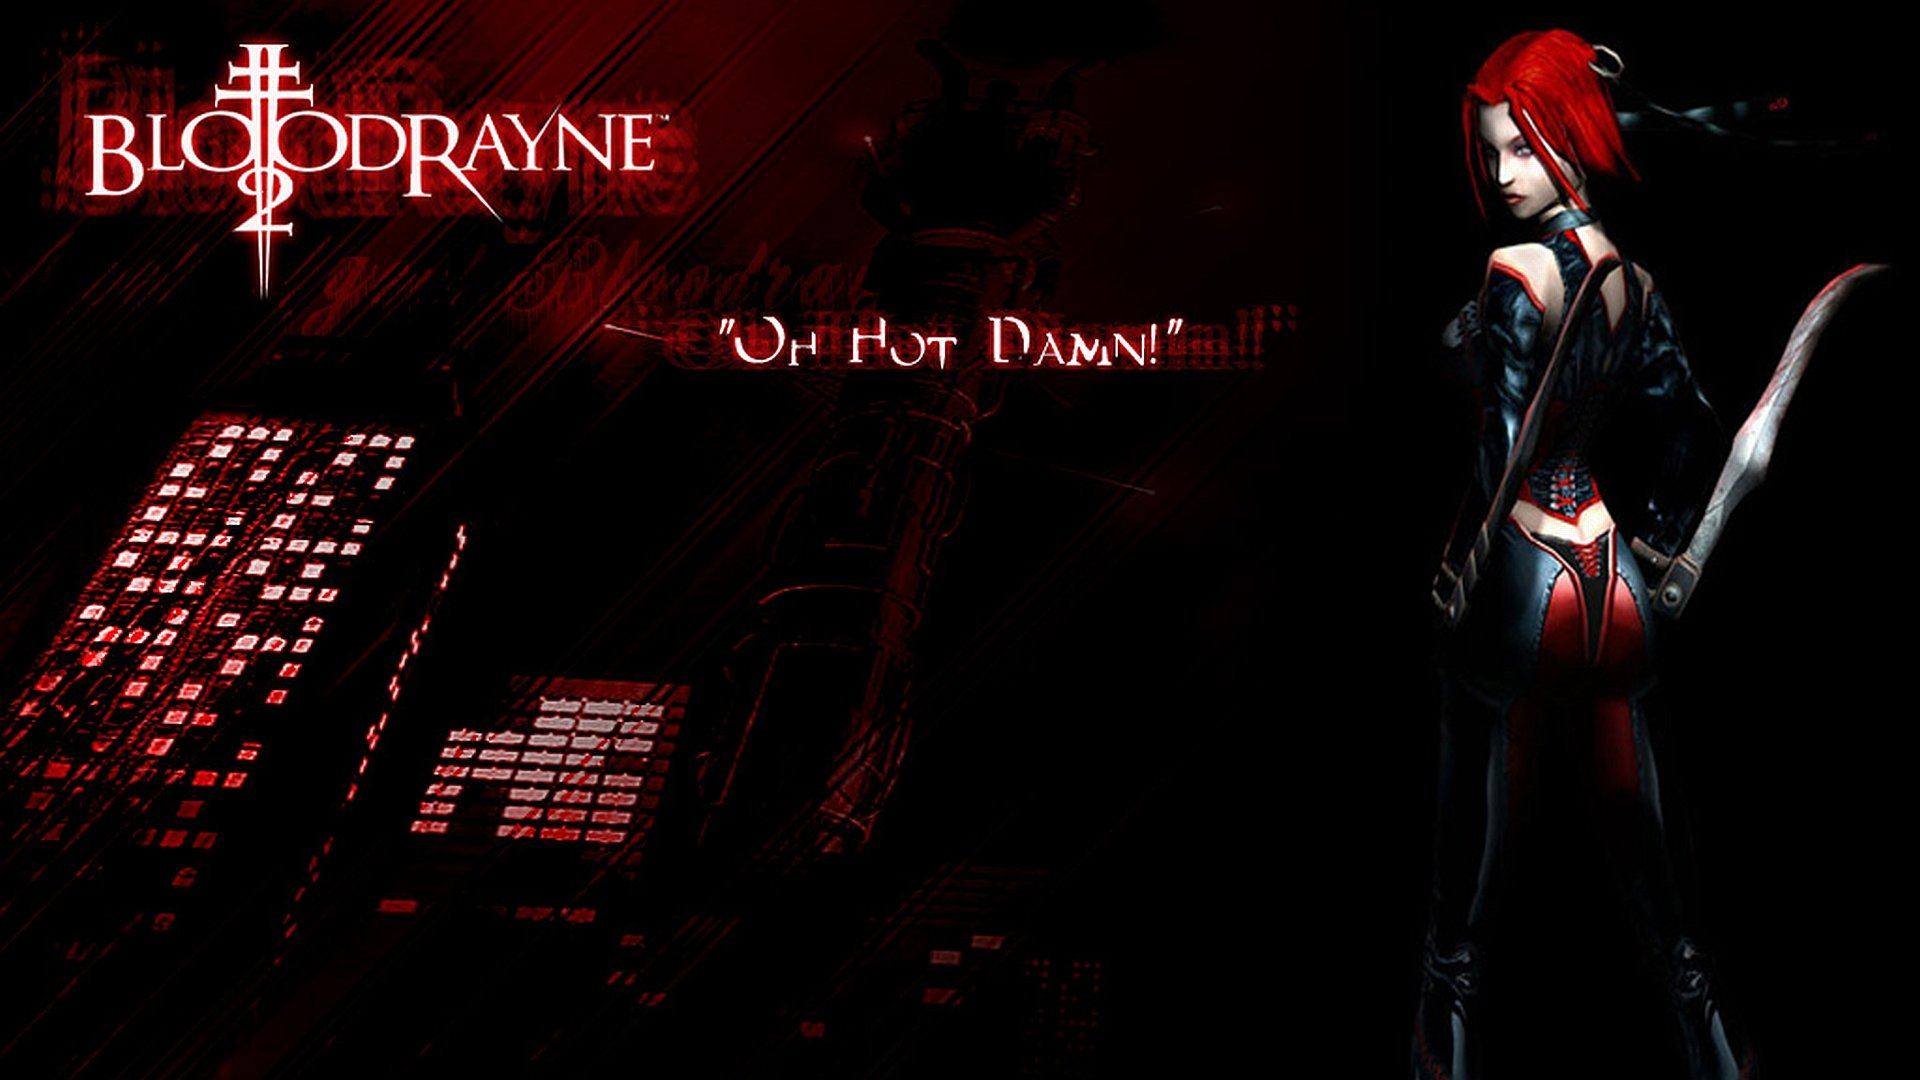 Free Download Bloodrayne Background Id 449225 Full Hd 1080p For Desktop